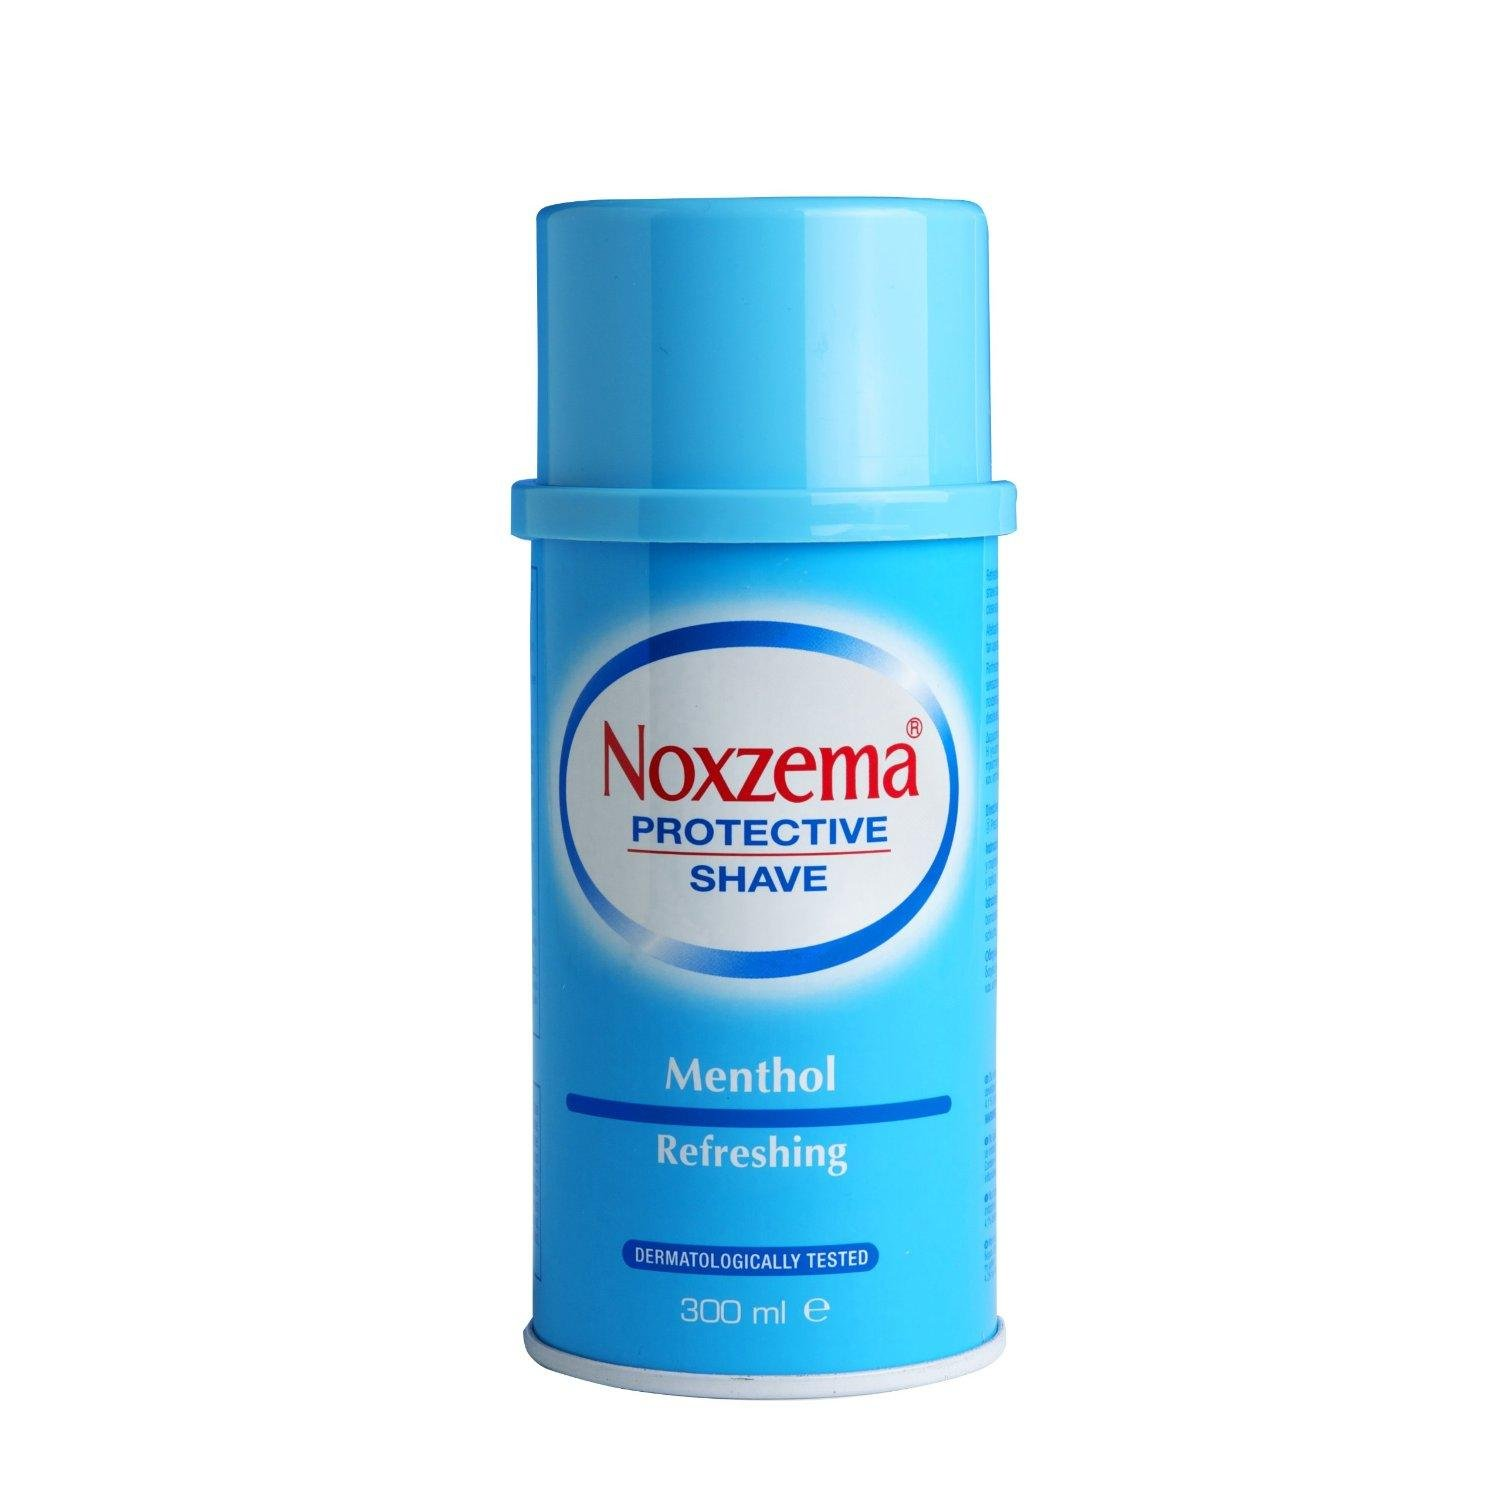 Noxzema schiuma da barba protettiva mentolo 300  ml Ever Ready Razor Blade Co. Ltd 2933109